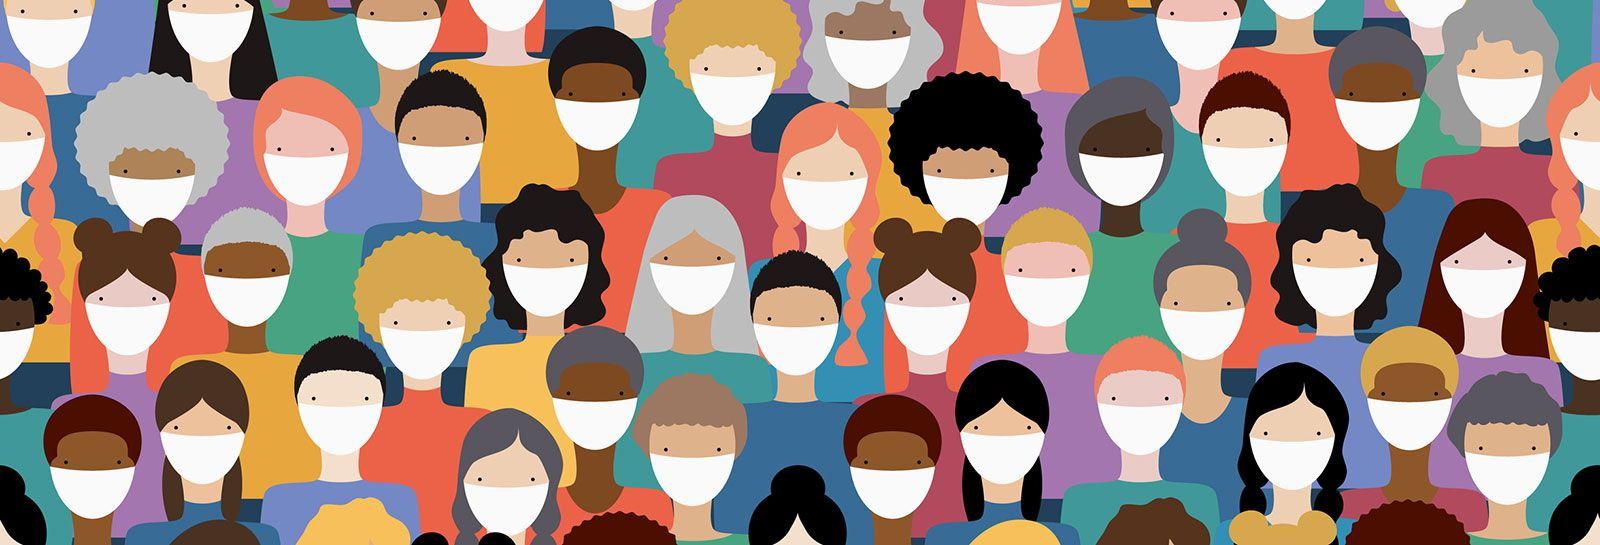 Large group of people wearing face masks banner image